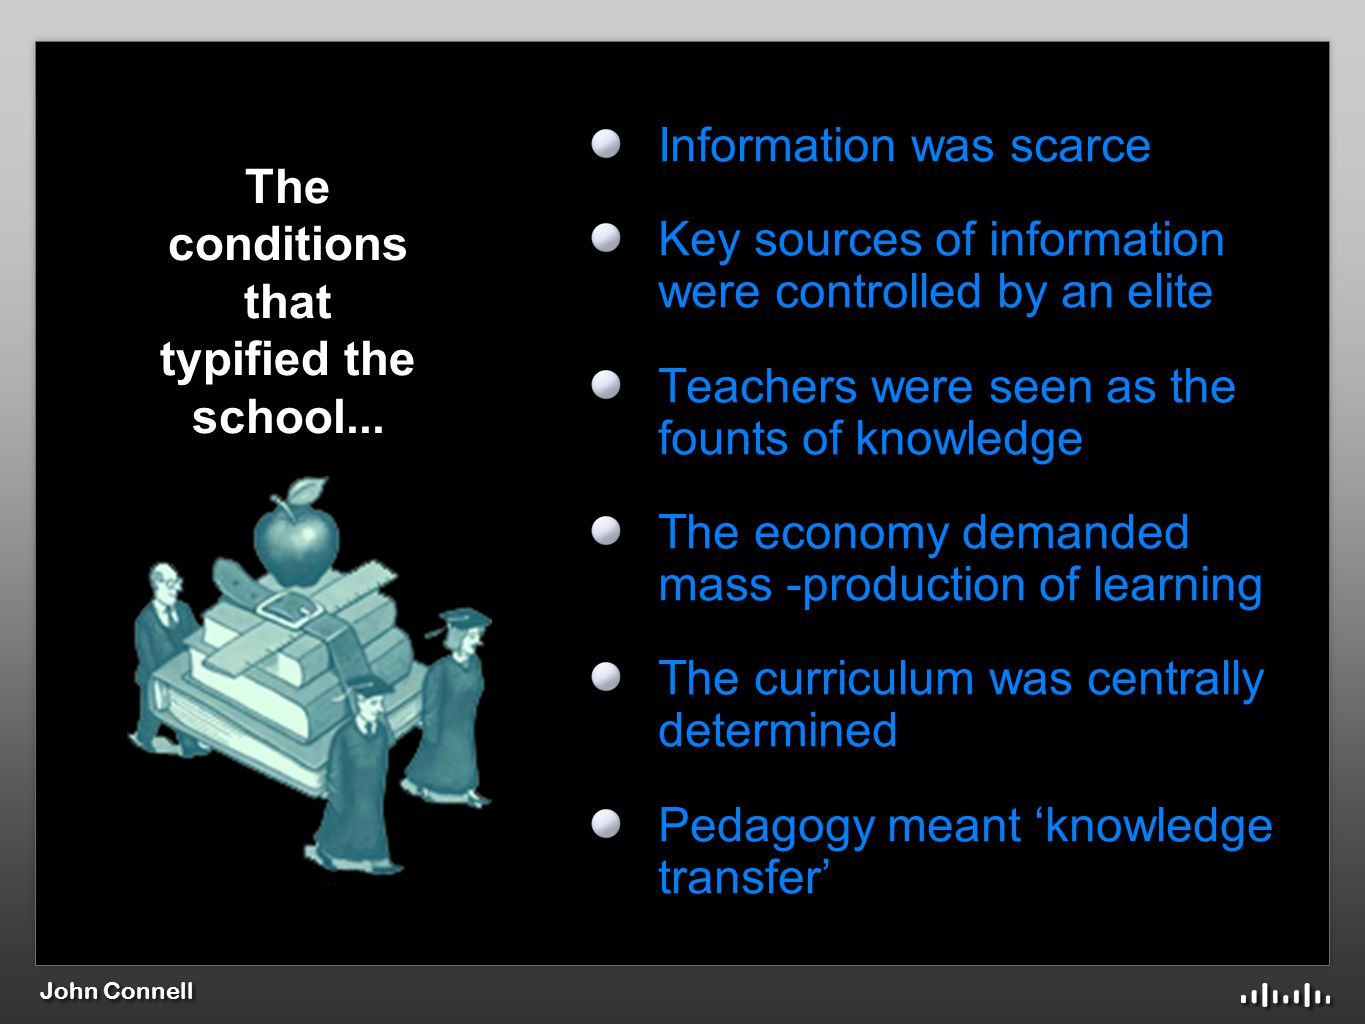 John Connell Information was scarce Key sources of information were controlled by an elite Teachers were seen as the founts of knowledge The economy demanded mass -production of learning The curriculum was centrally determined Pedagogy meant 'knowledge transfer' The conditions that typified the school...